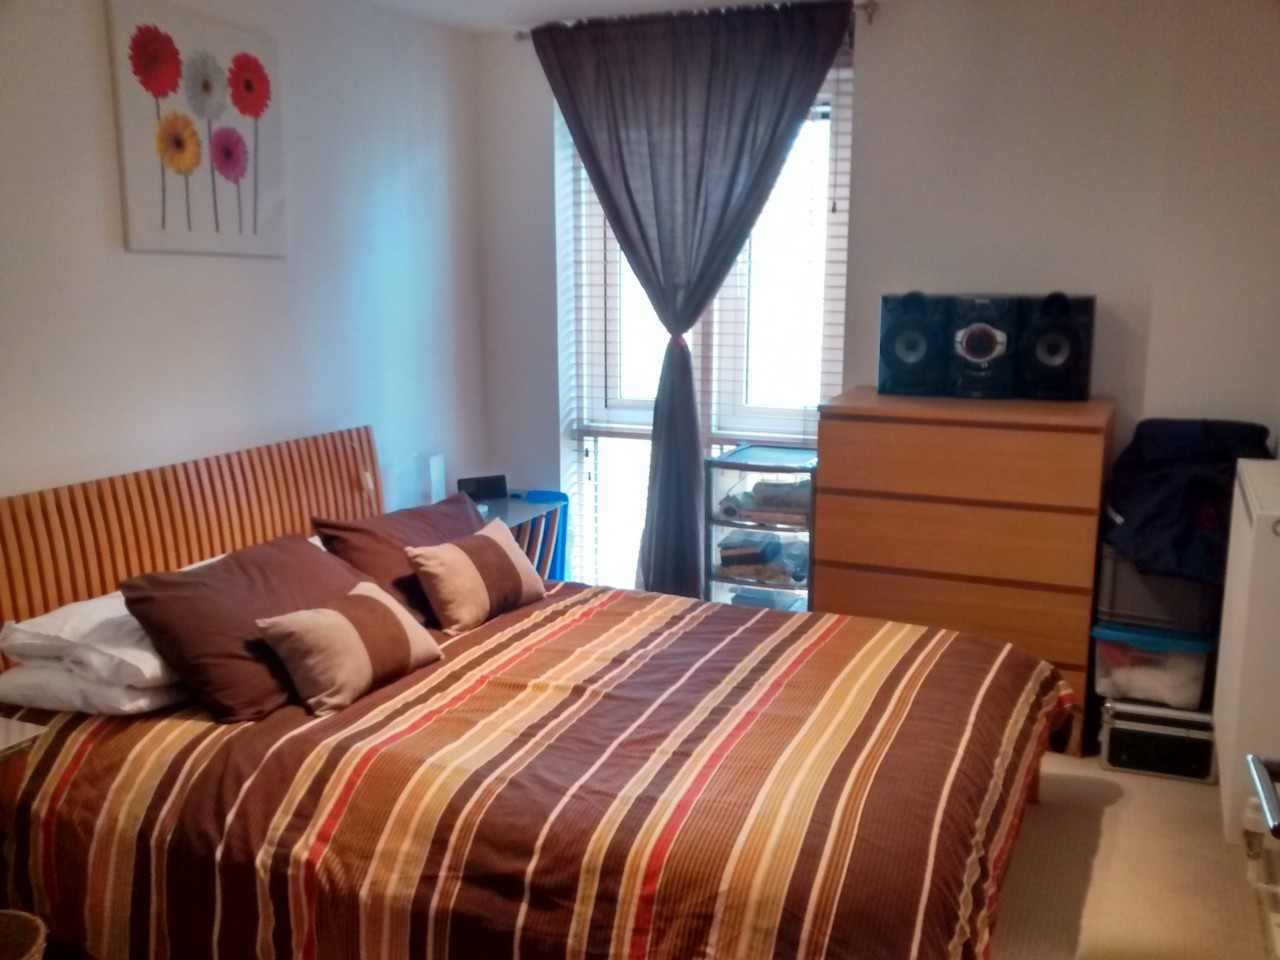 2 Bedroom Furnished Apartment To Rent In Reading The